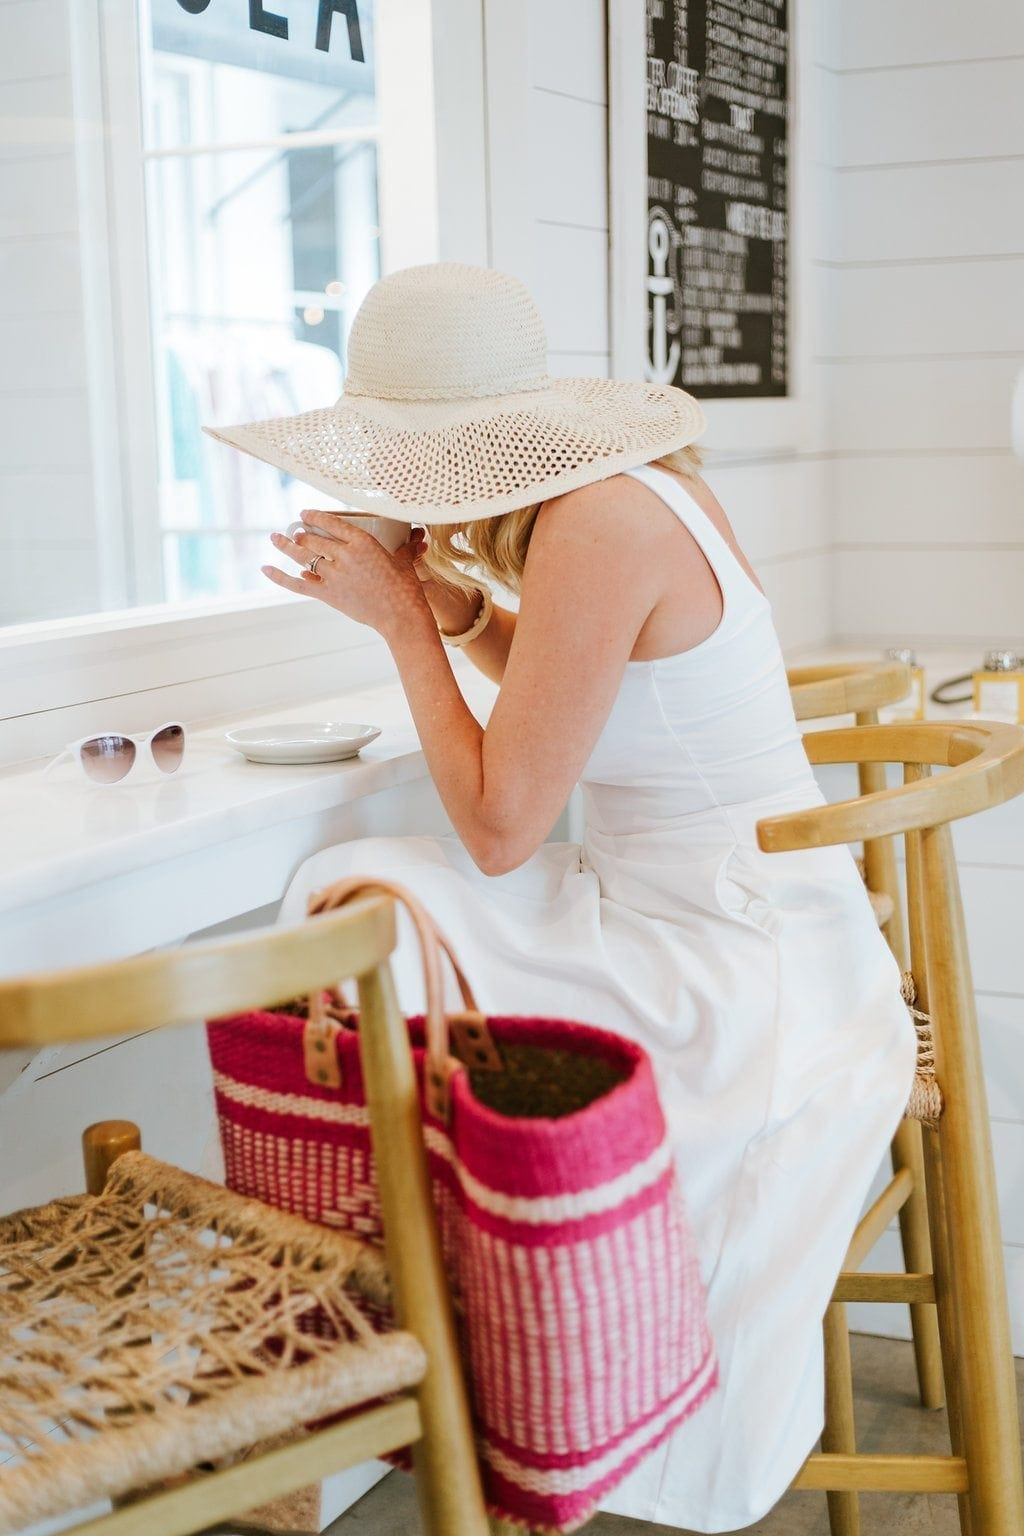 Sun hat and white summer dress. Drinking coffee in white coffee shop with shiplap walls and rattan bar chairs.